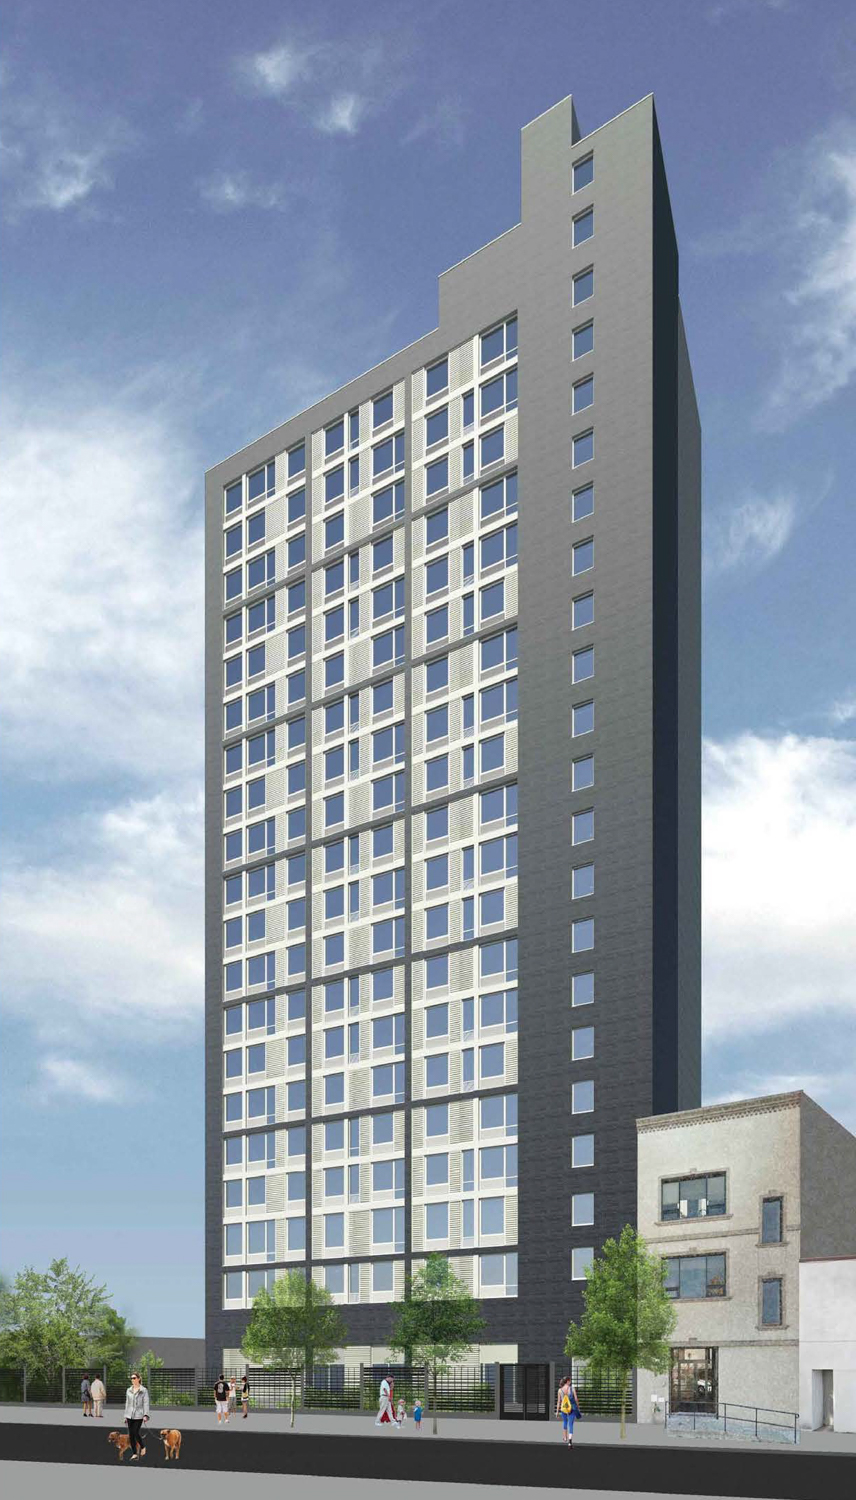 Renderings Revealed for High-Rise Affordable Housing at 153